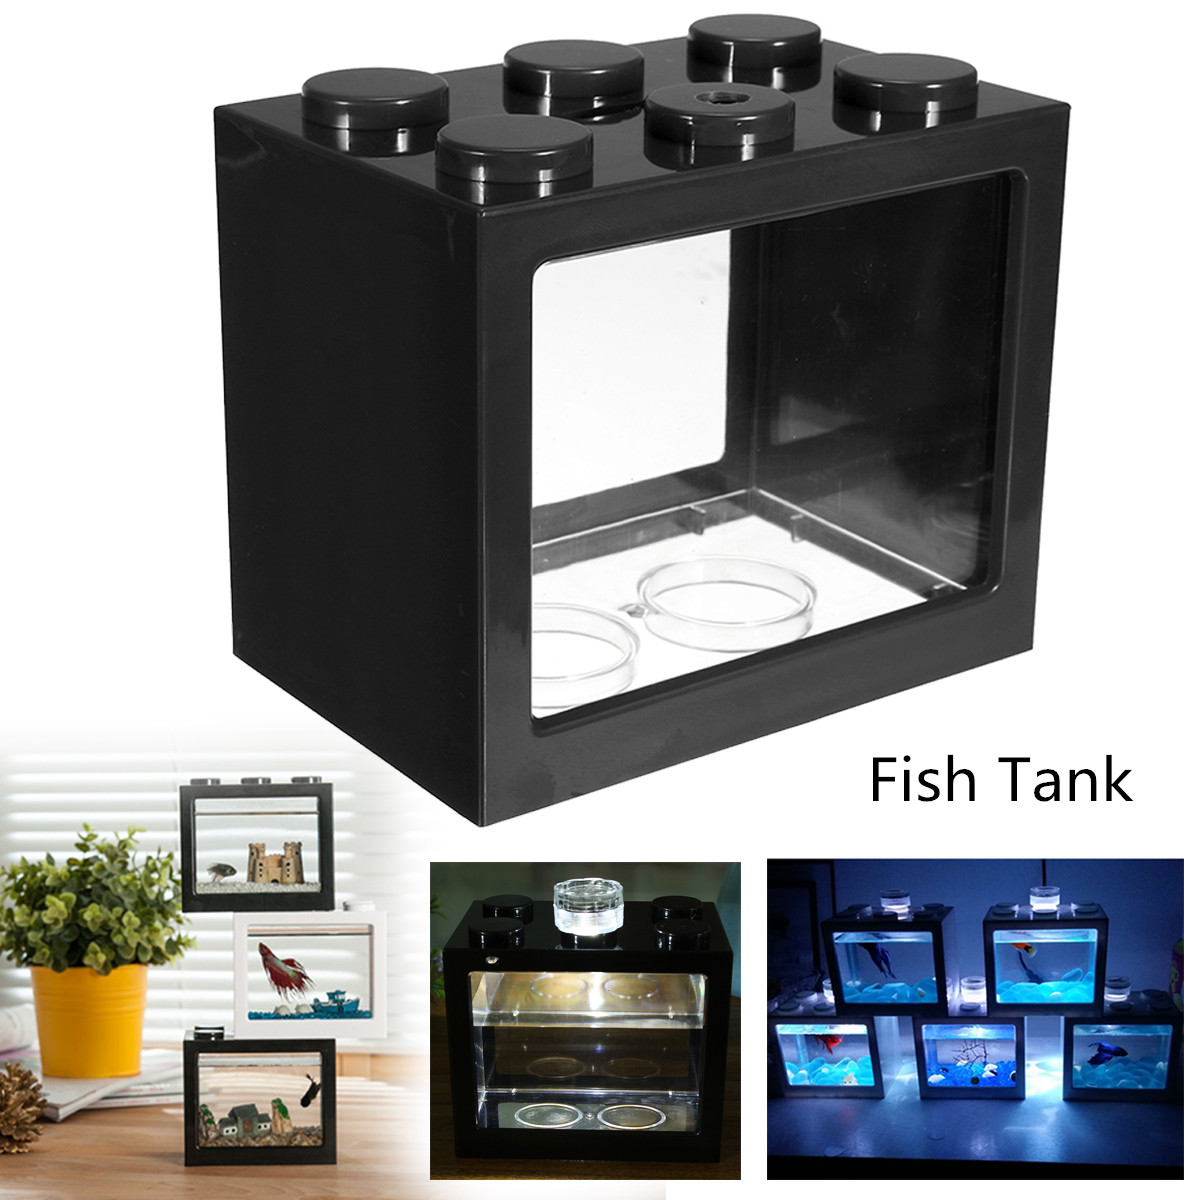 Mini Fish Tank with light